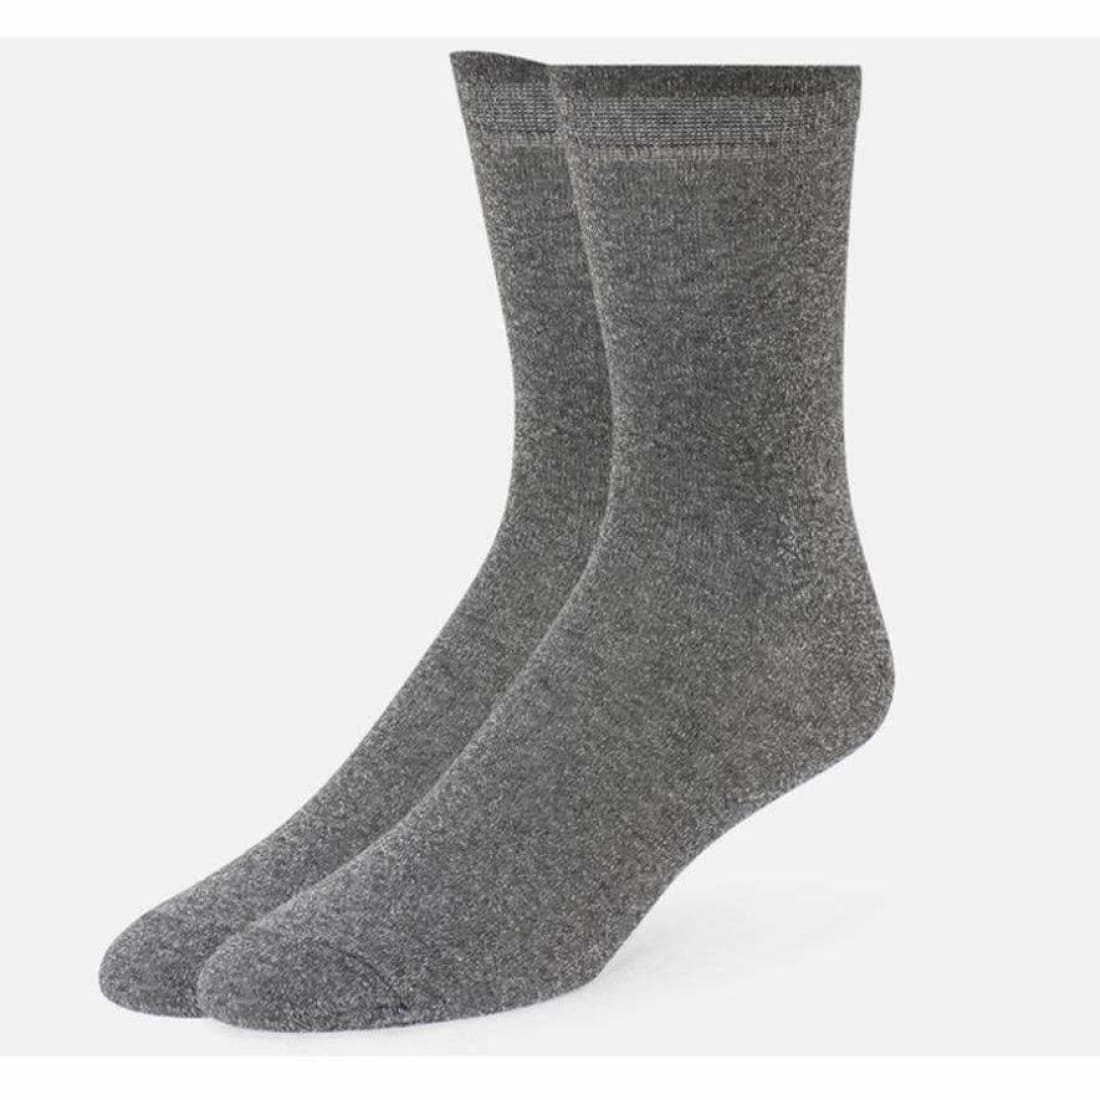 B.ella Womens Vivianna Sparkle Quarter Crew Socks Made In Usa 5-10 / Grey Socks